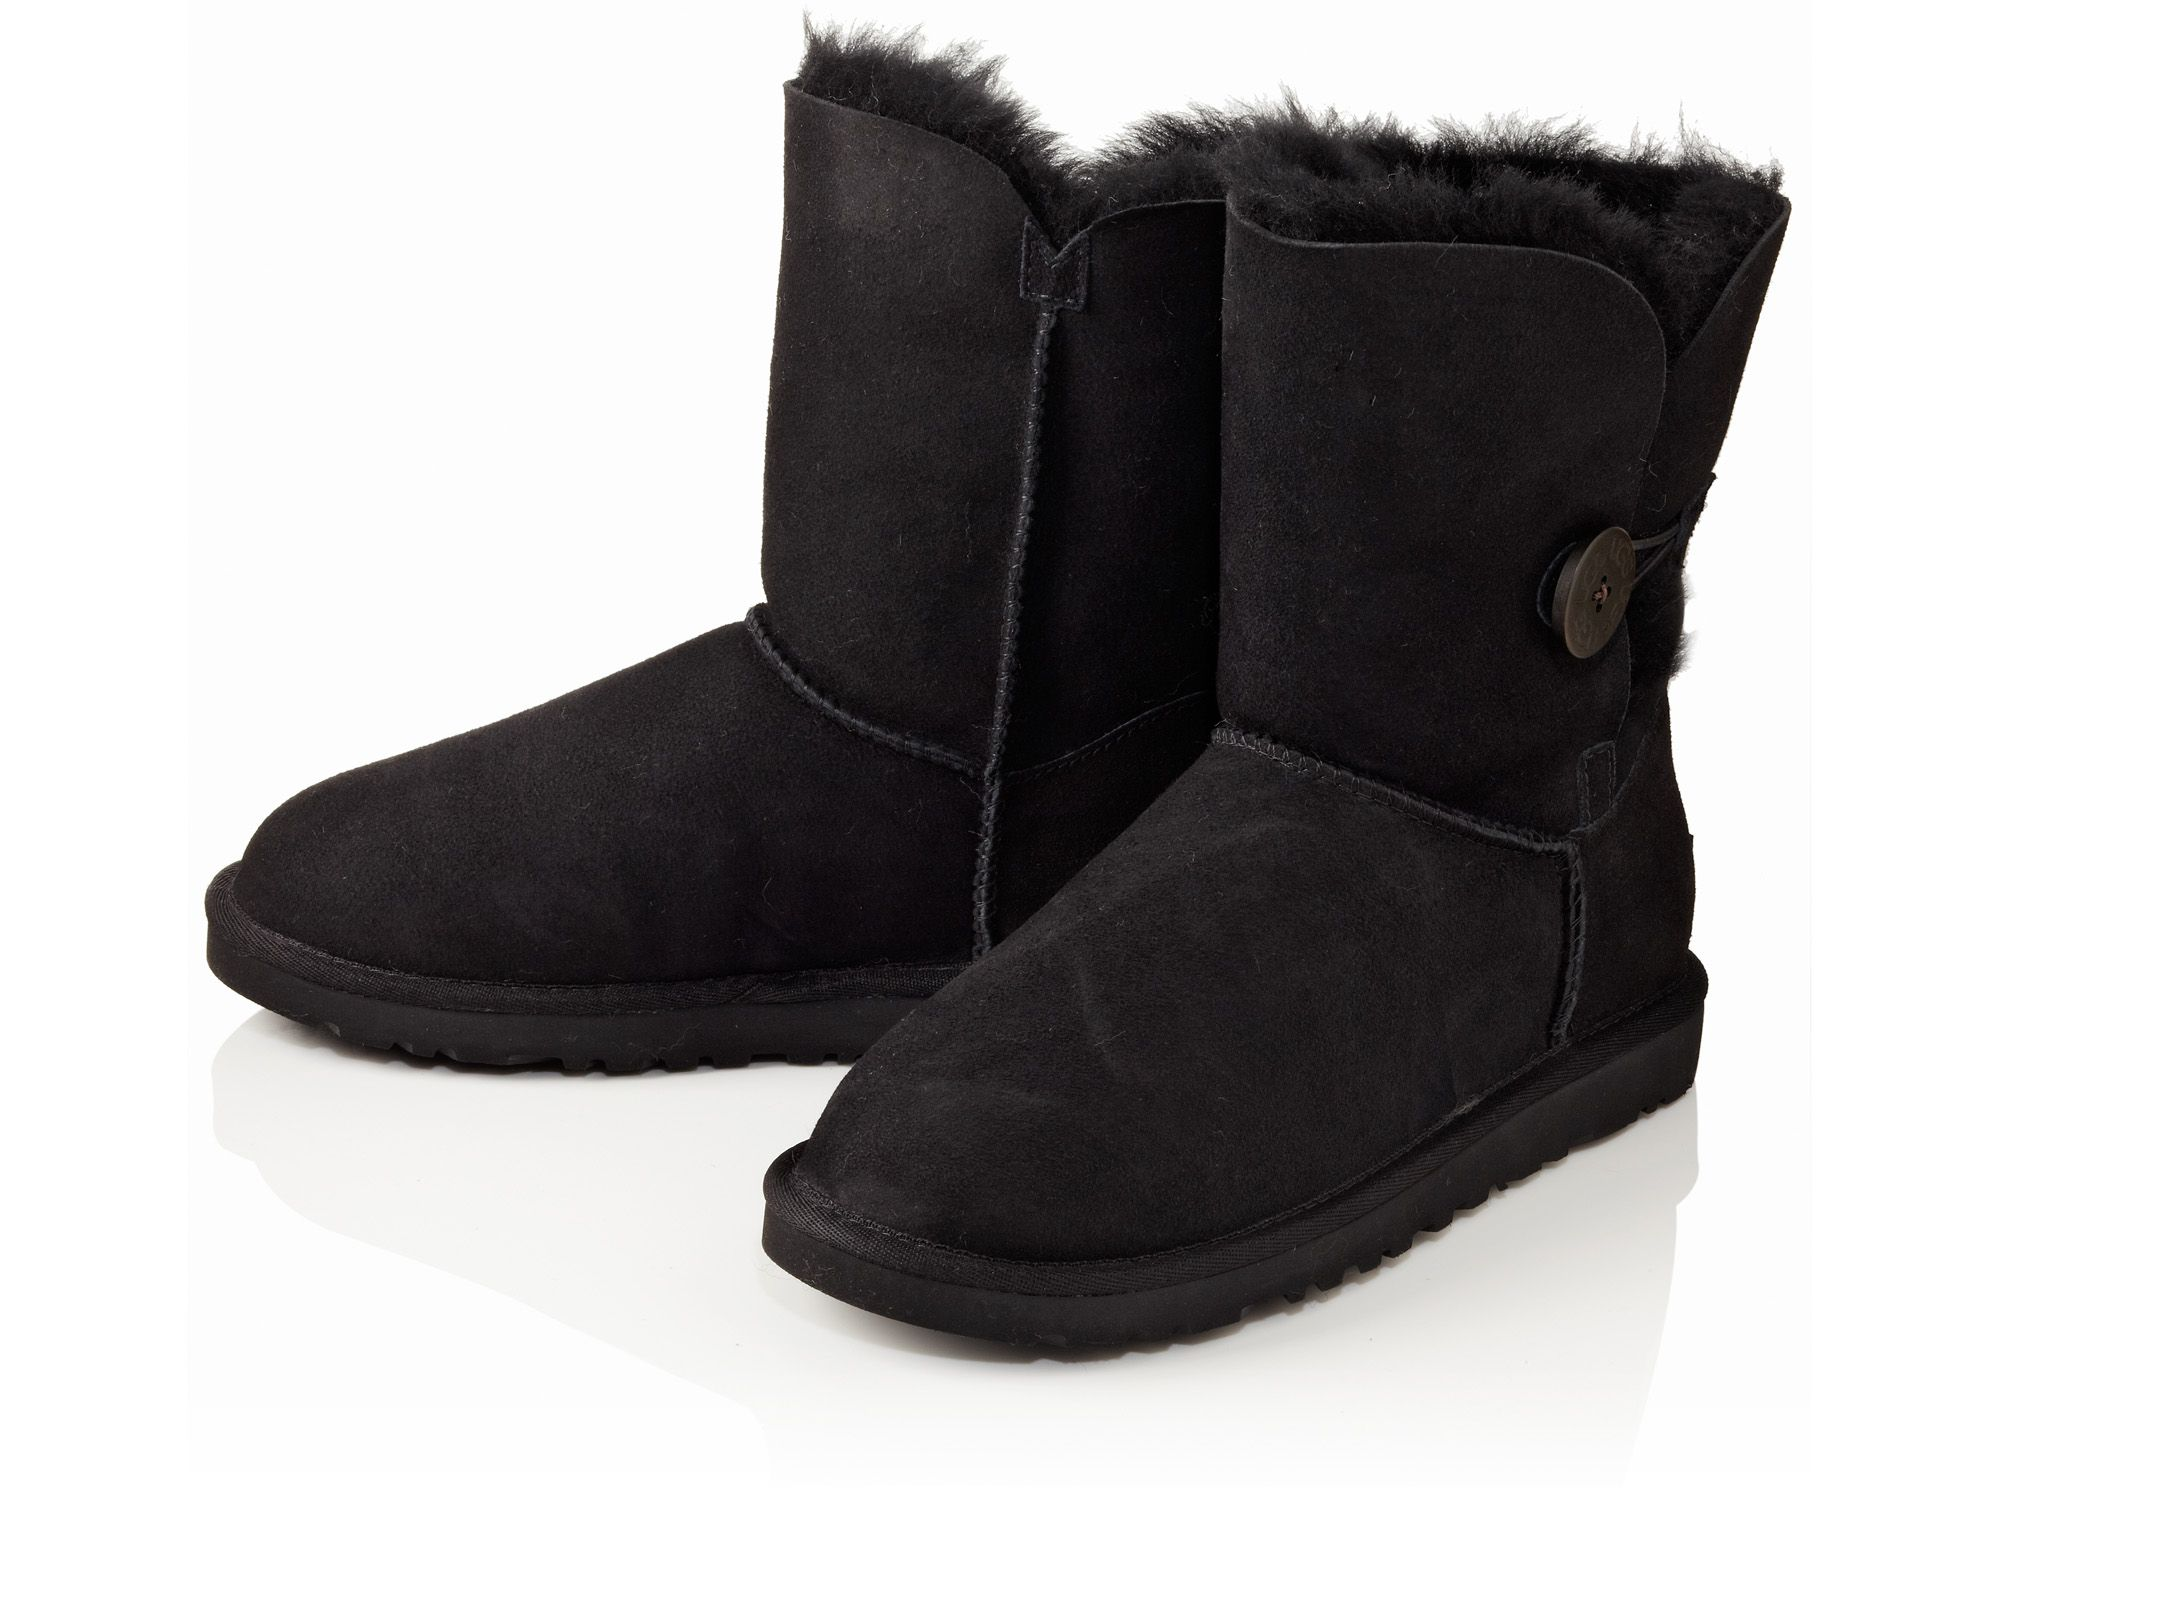 Bailey Button casual flat boots